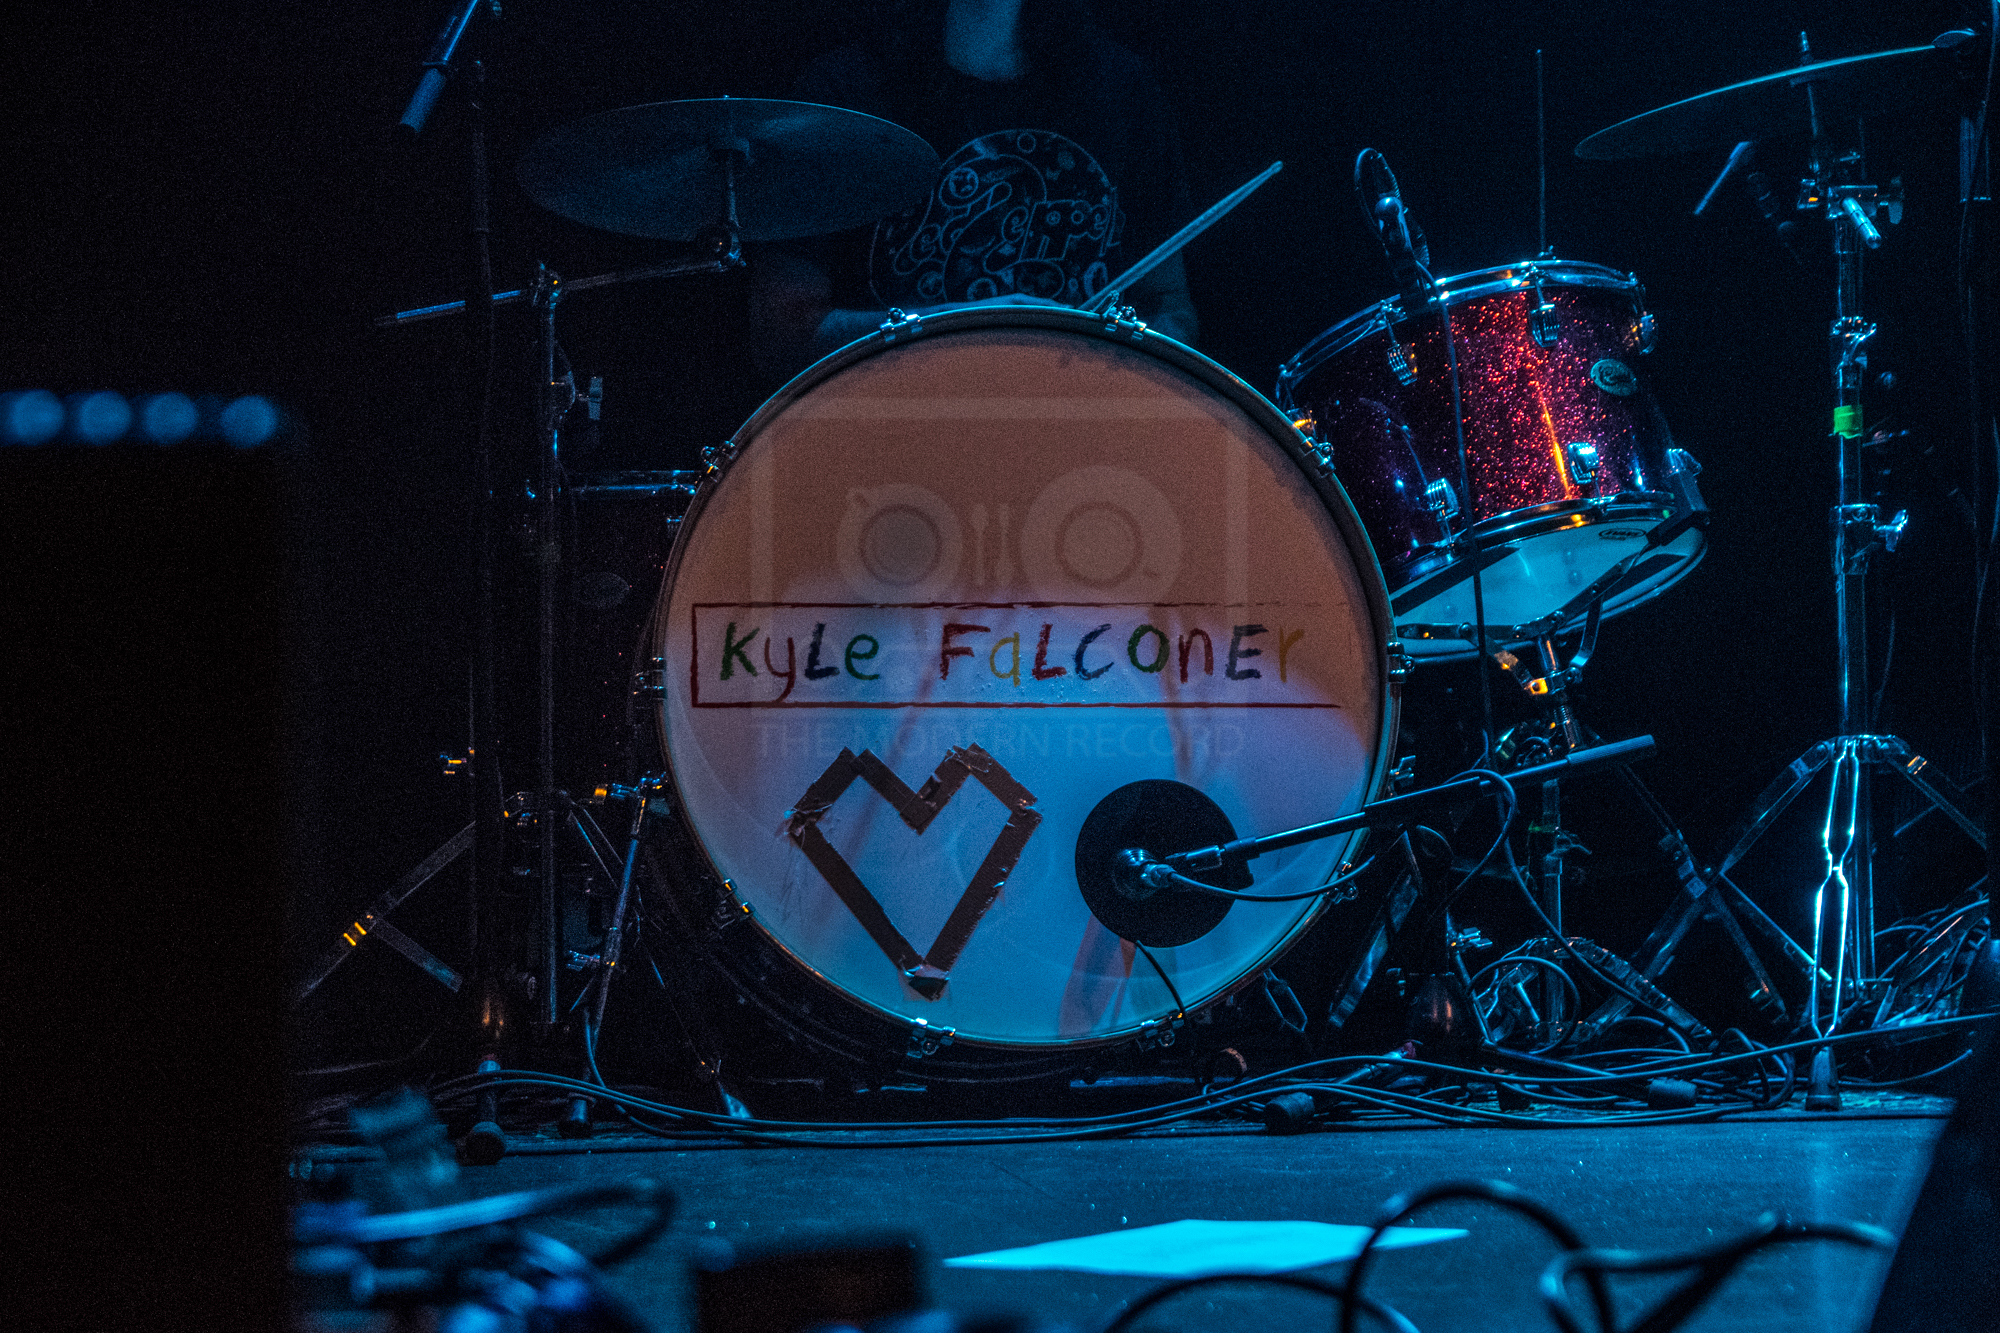 KYLE FALCONER PERFORMING AT GLASGOW'S QMU - 08.03.2019  PICTURE BY: STEPHEN WILSON PHOTOGRAPHY